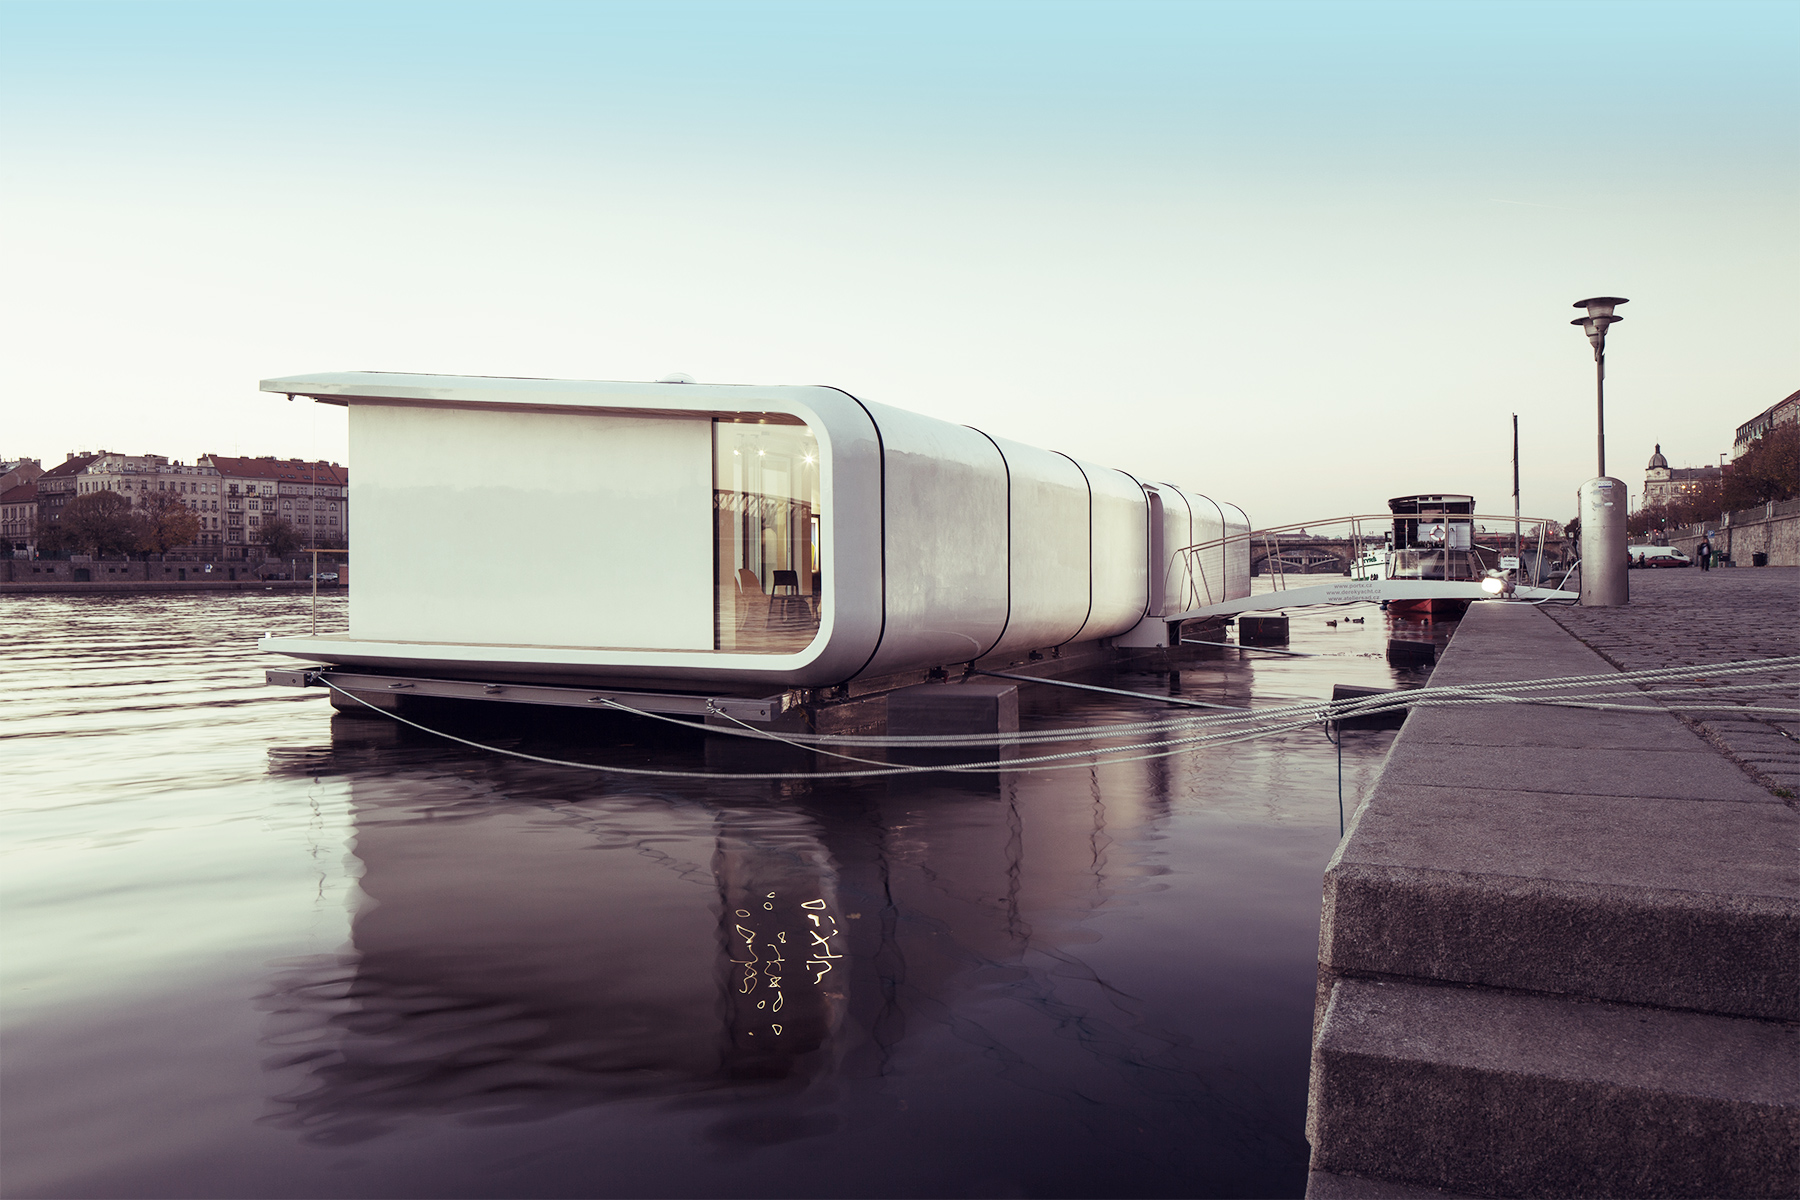 portX accommodation on the water